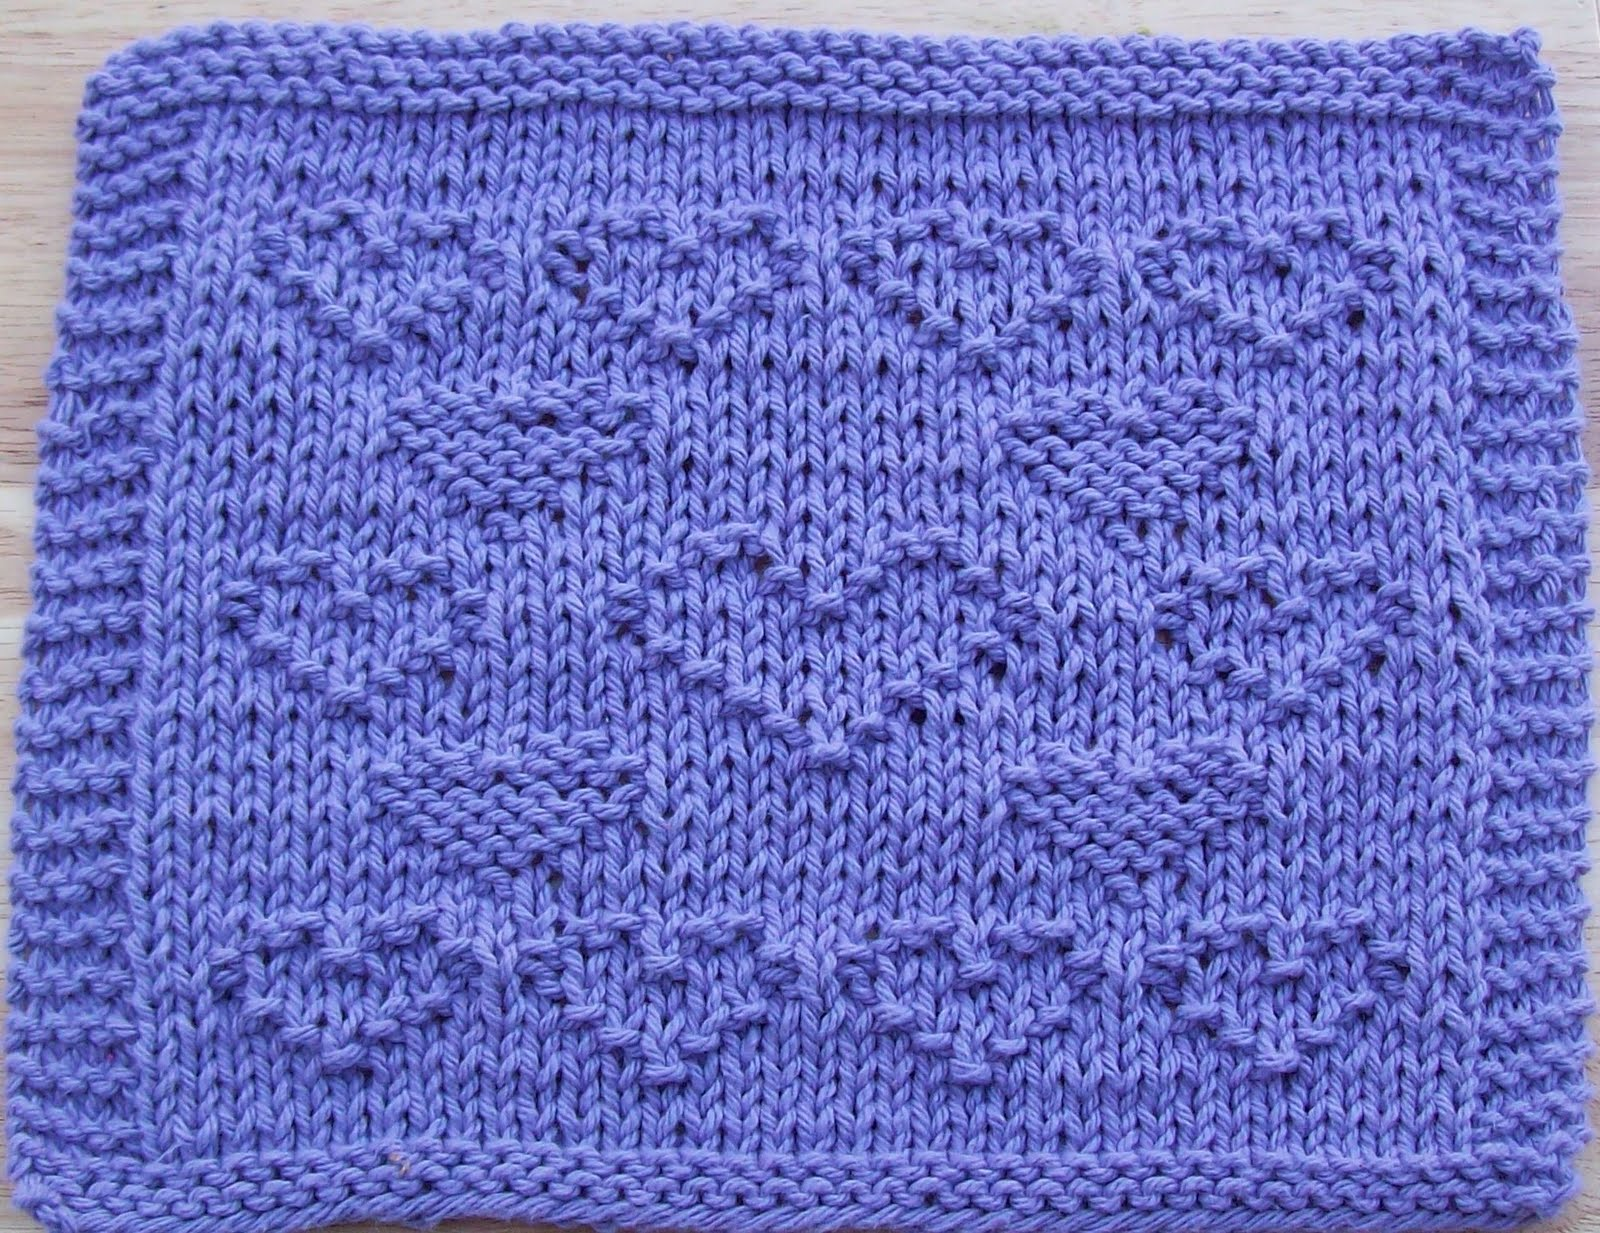 Knitting Pattern Heart Dishcloth : DigKnitty Designs: All About Hearts Knit Dishcloth Pattern